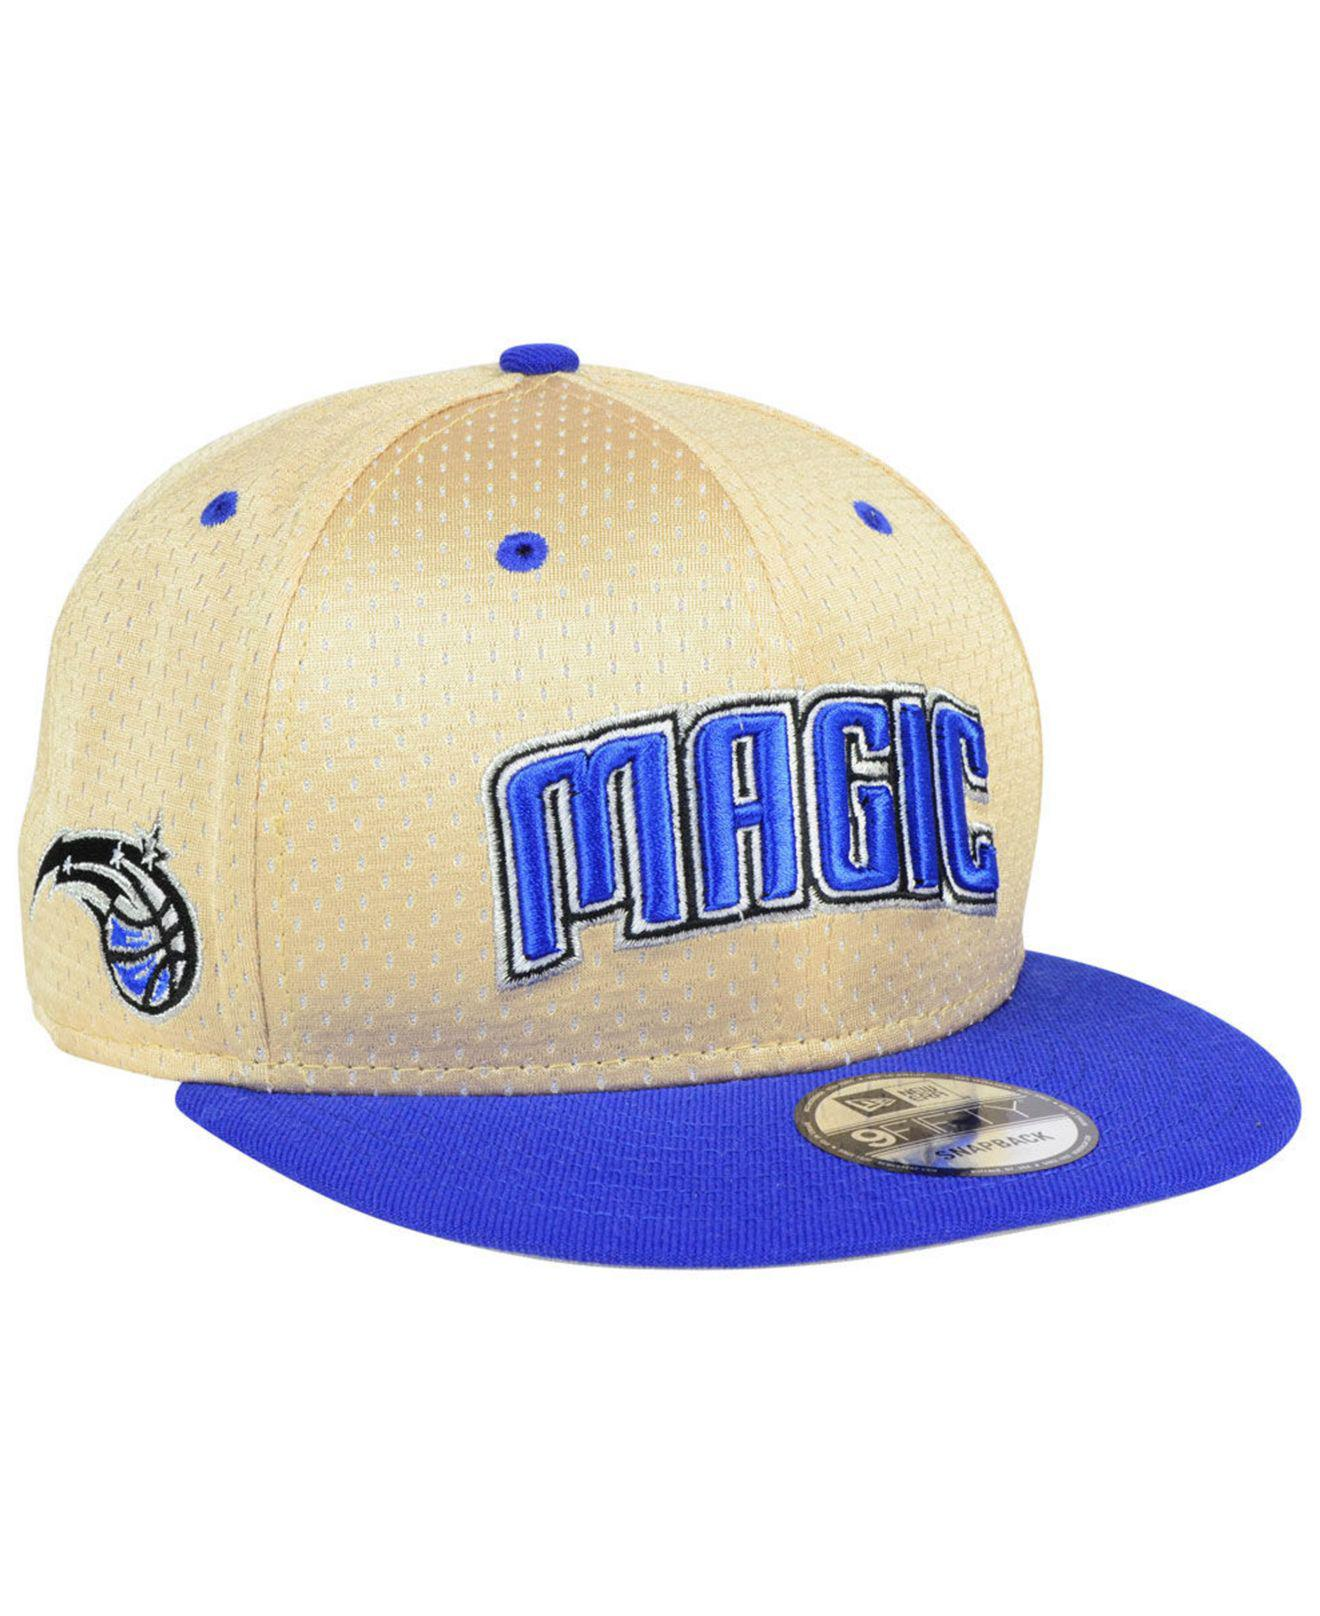 e8655a30eaaa3 Lyst - KTZ Orlando Magic Champagne 9fifty Snapback Cap in Blue for Men